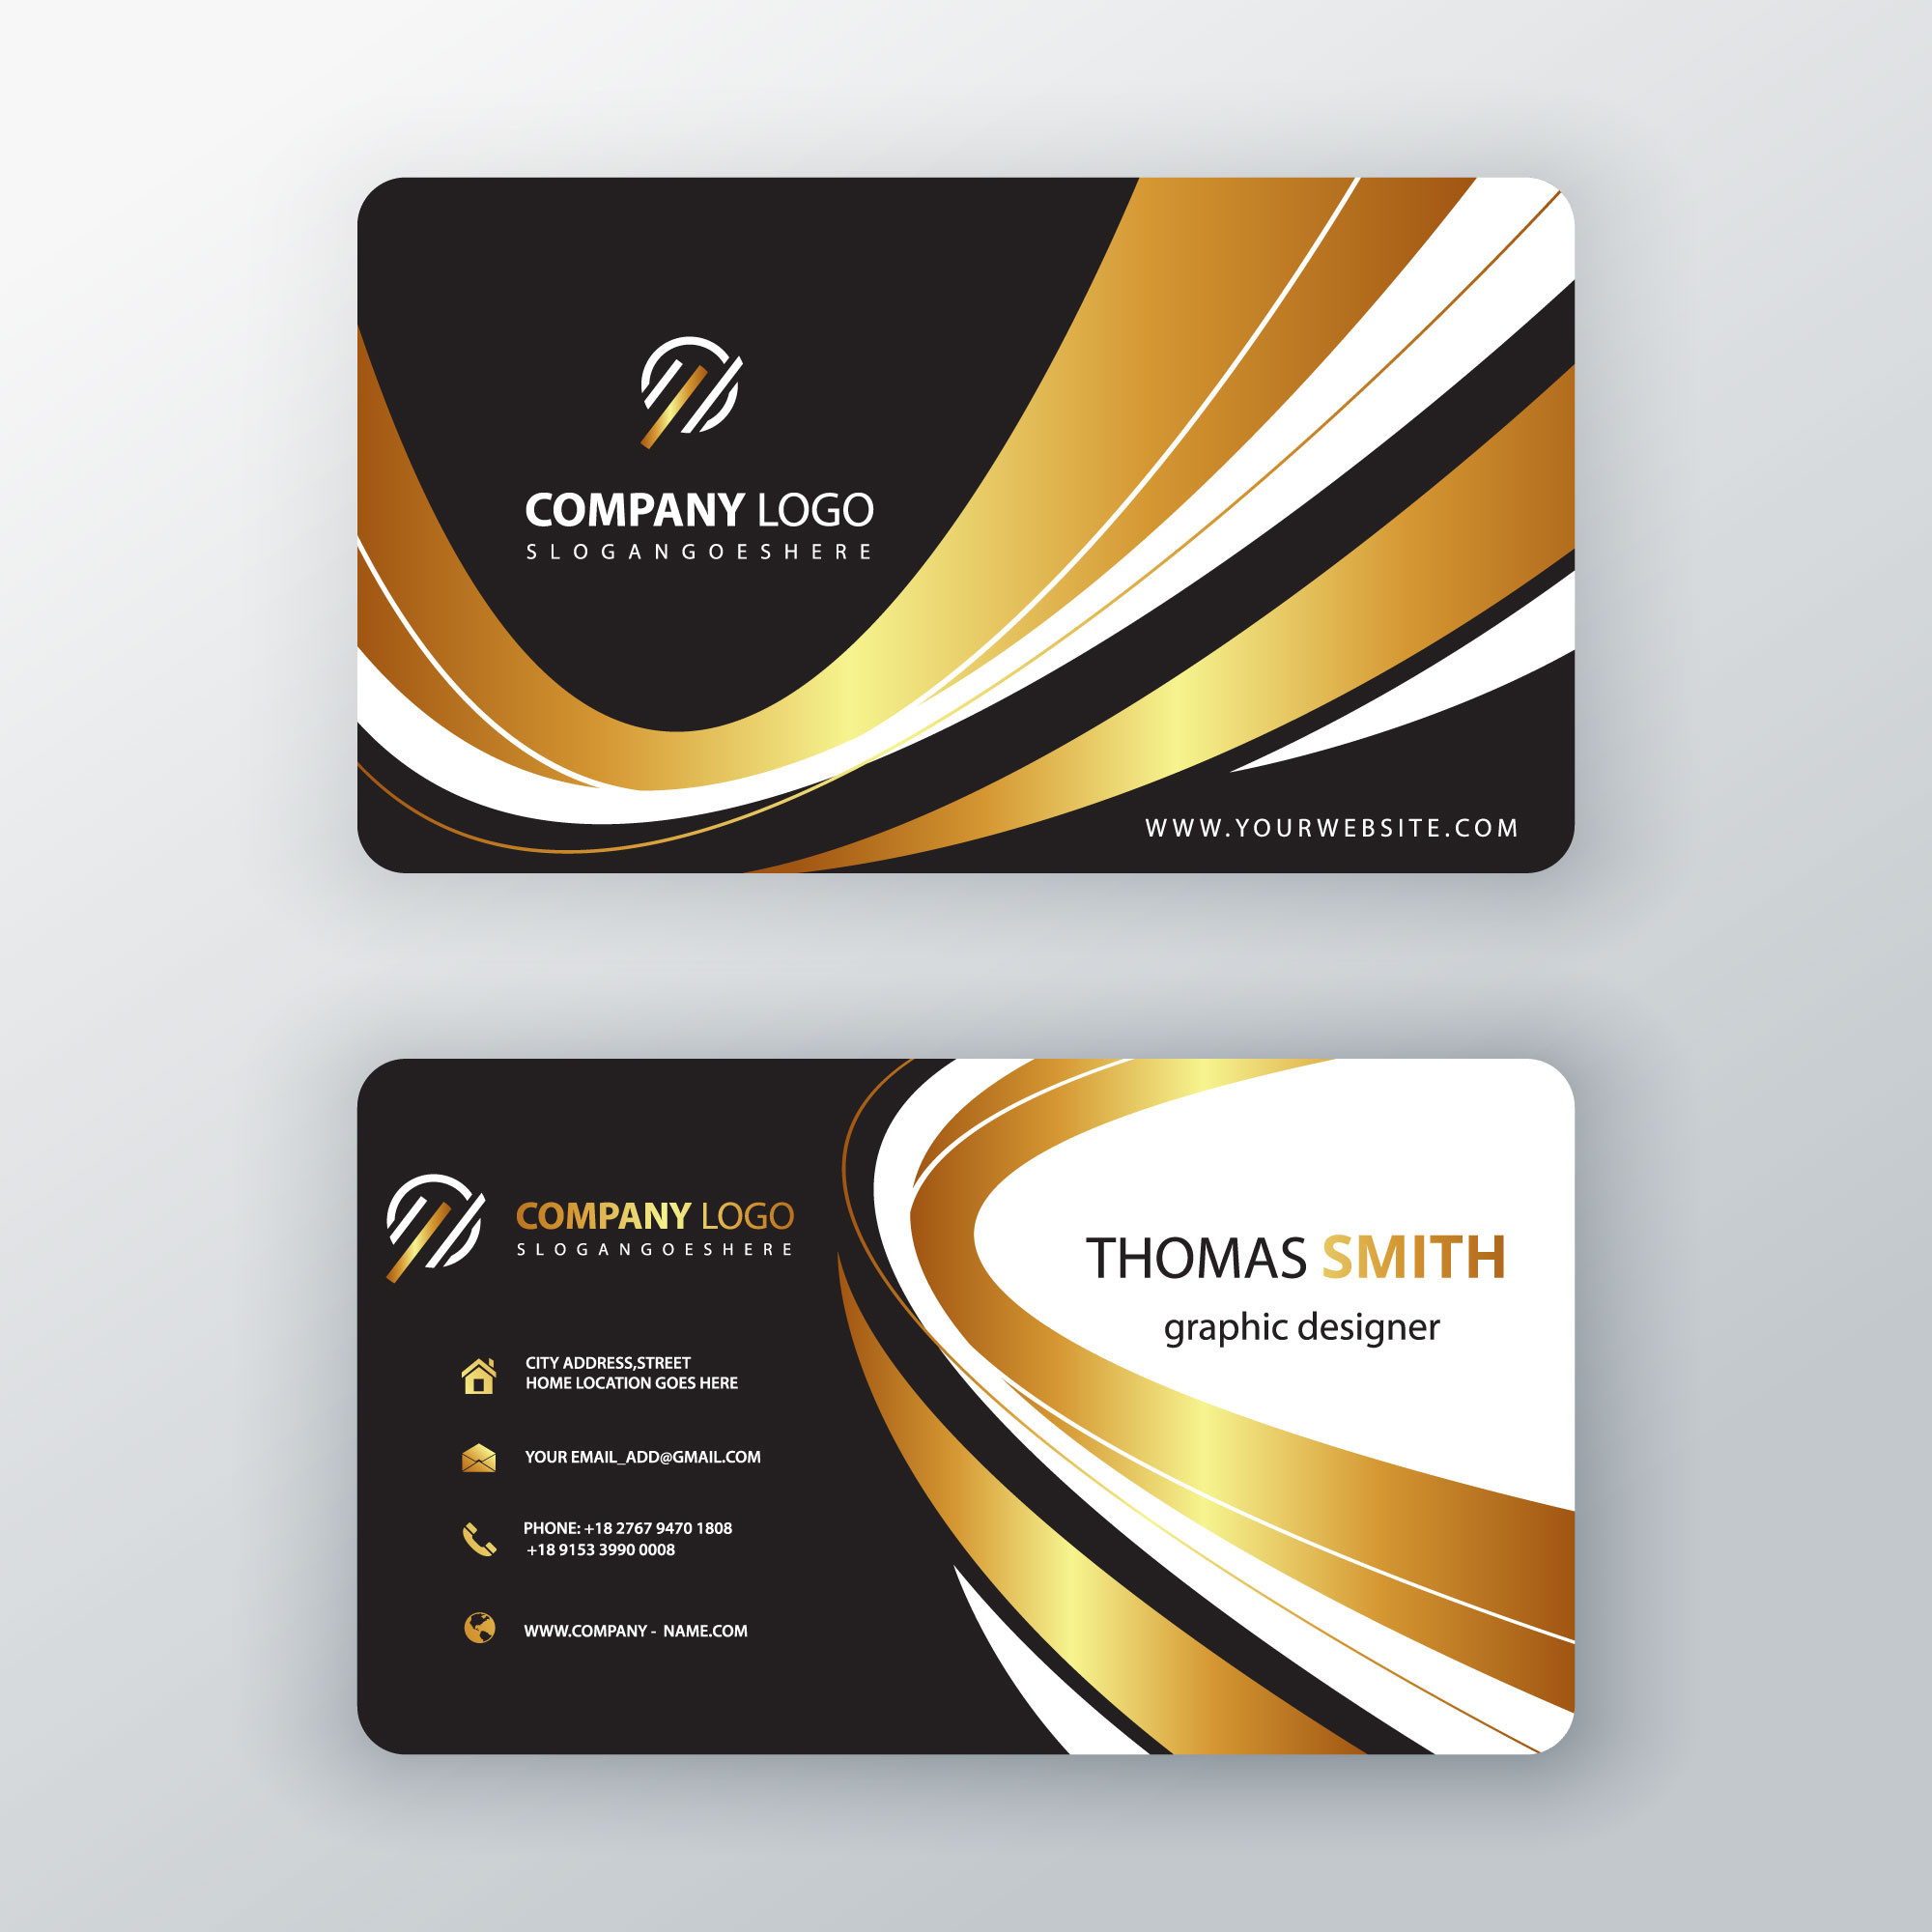 Luxury elegant business cardornament swirl visit card